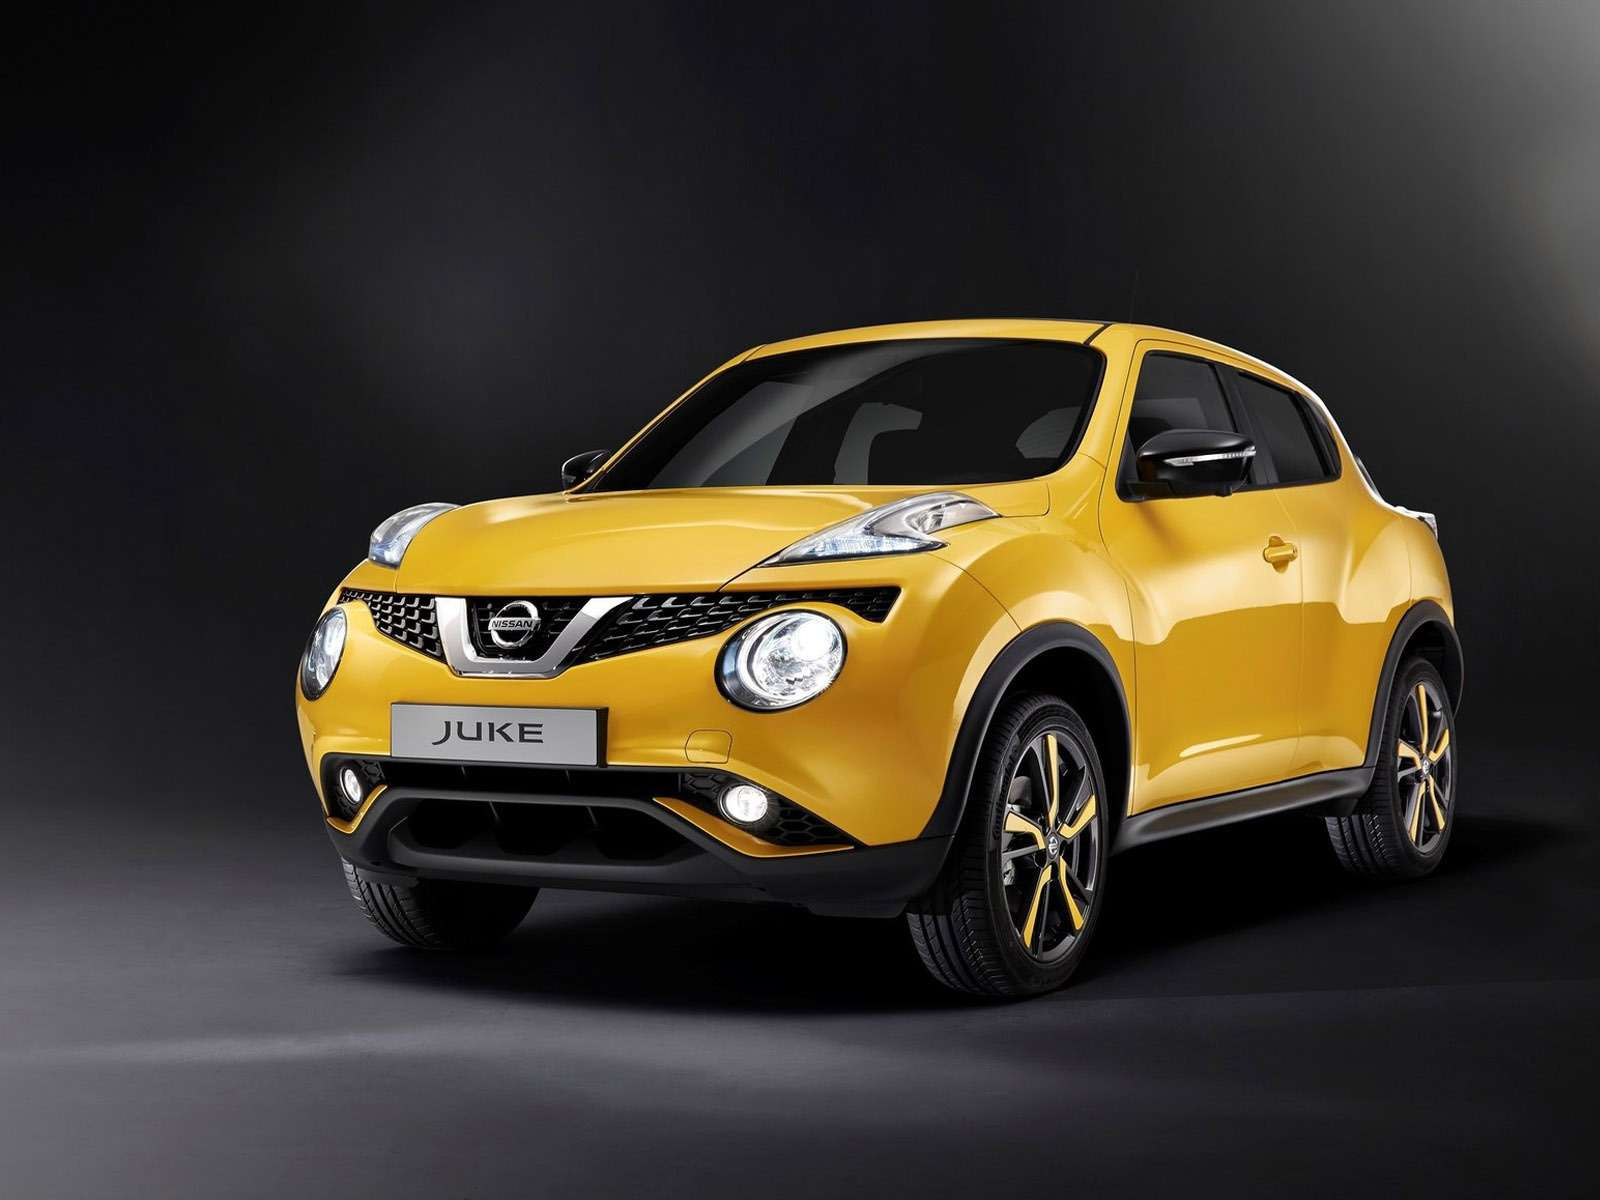 2015-Nissan-Juke-HD-Wallpapers-1